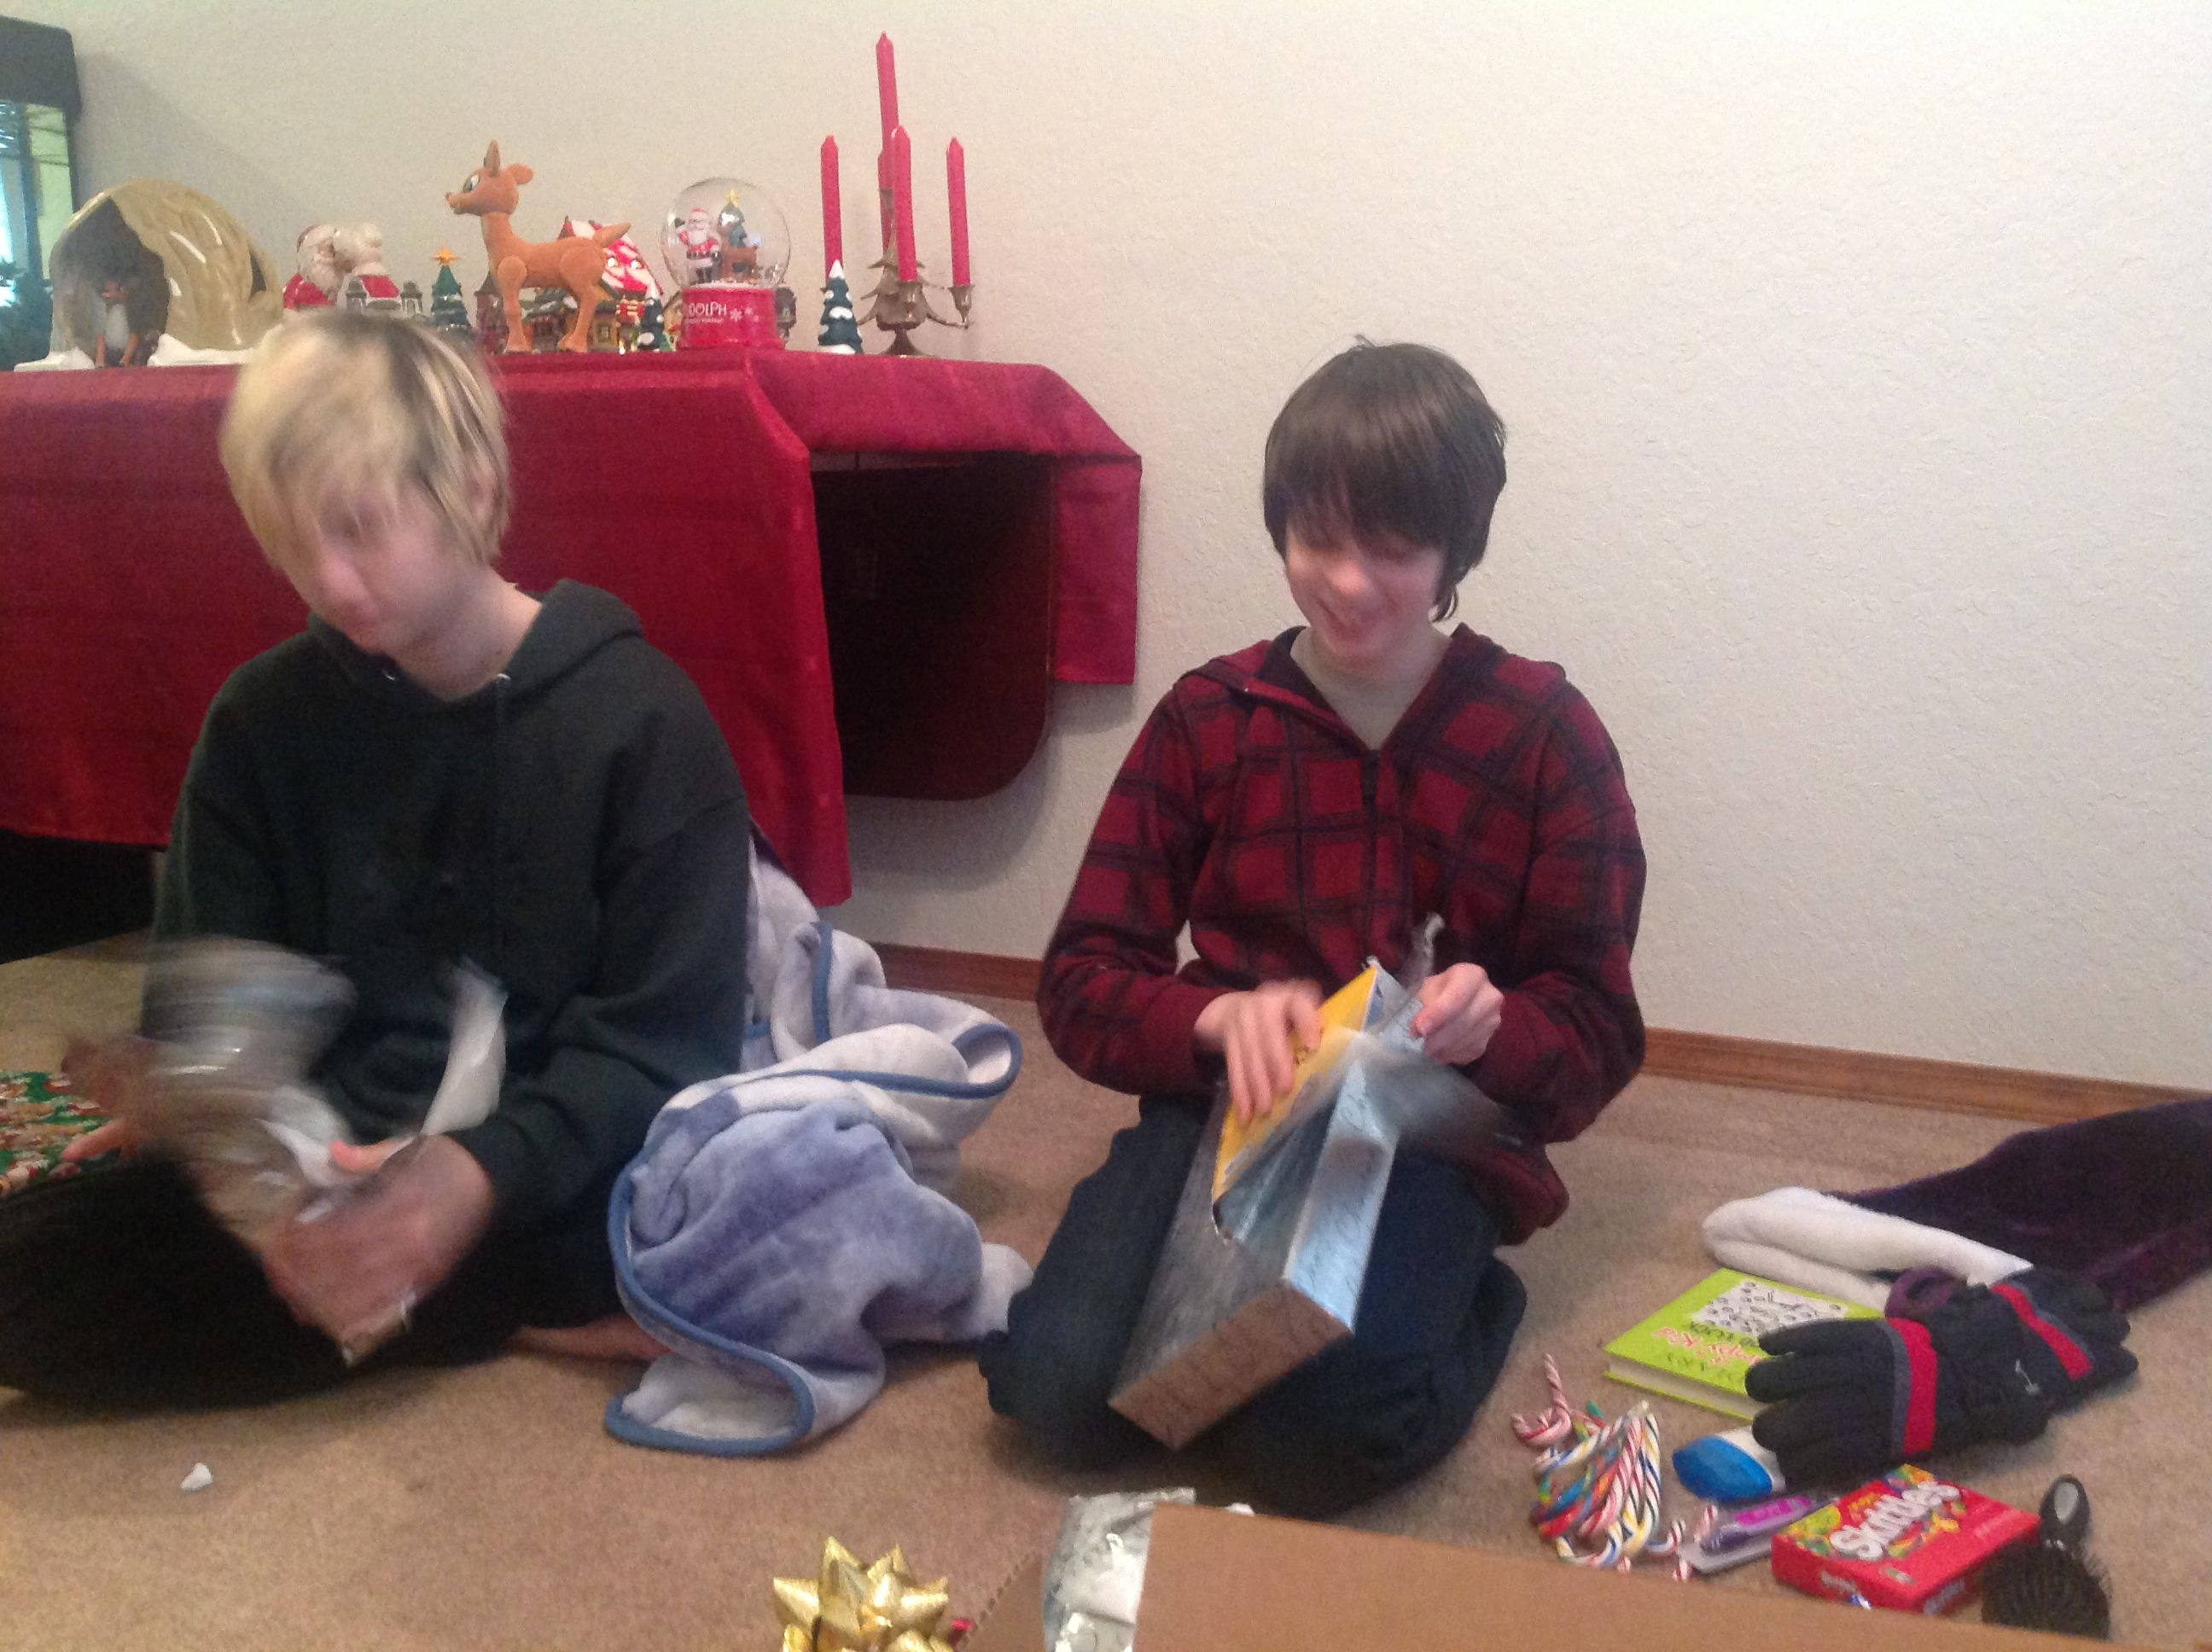 Middle Gal and Little Guy - more presents